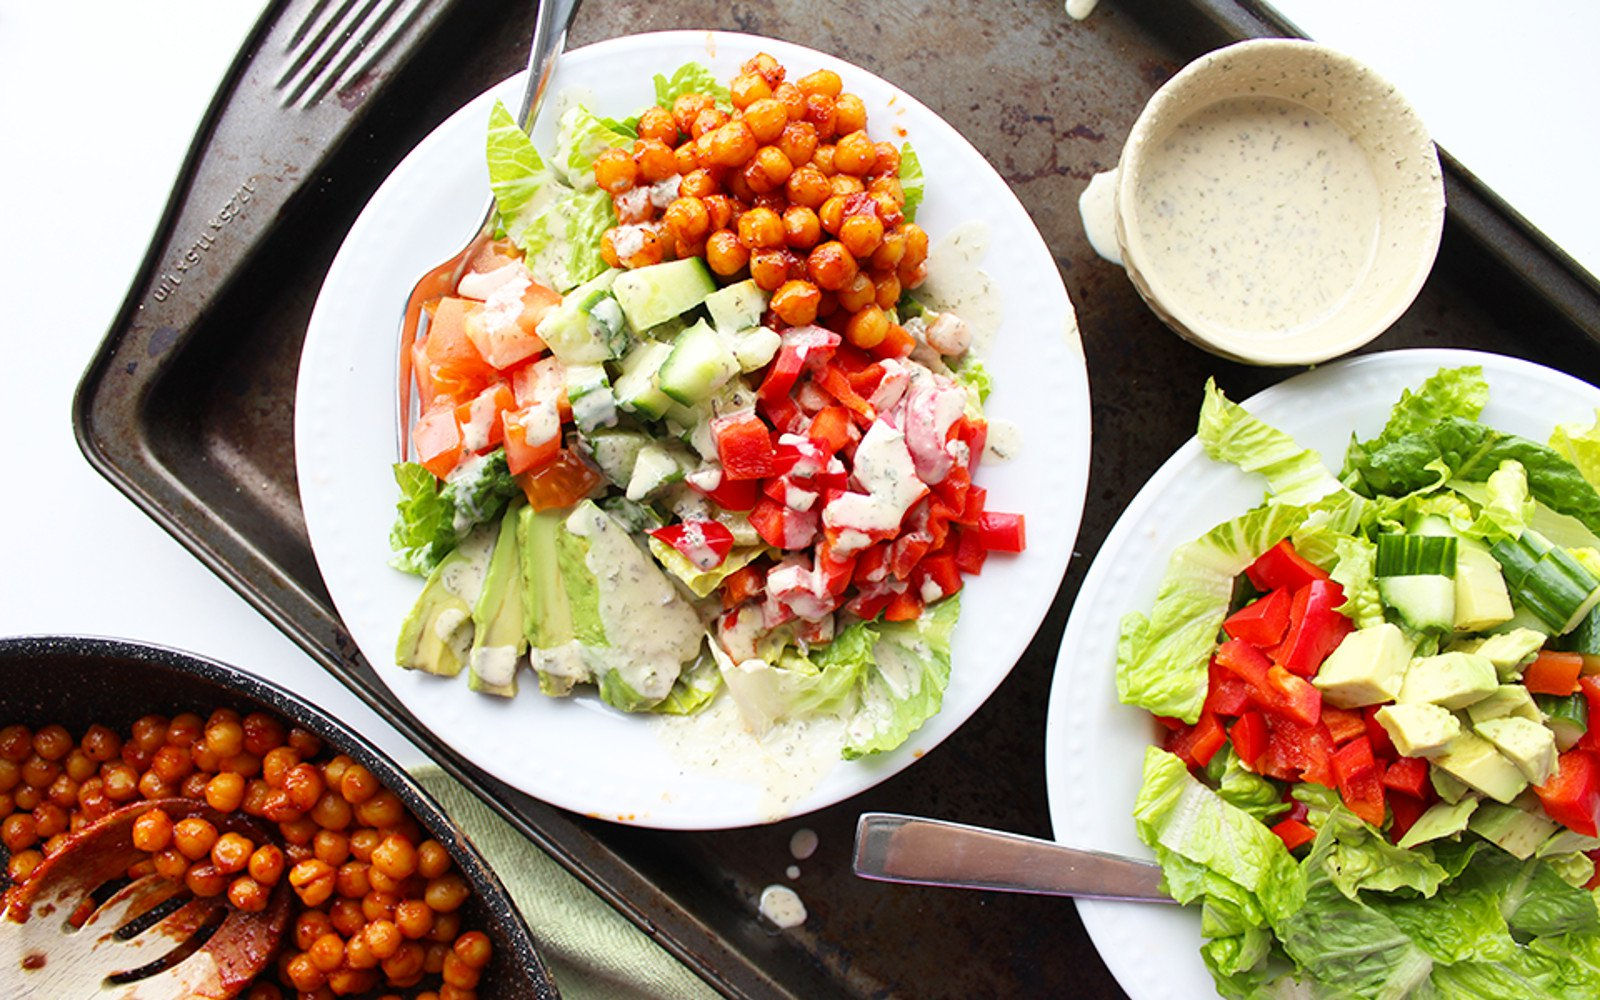 Barbecue Chickpea Salad With Dairy-Free Ranch Dressing